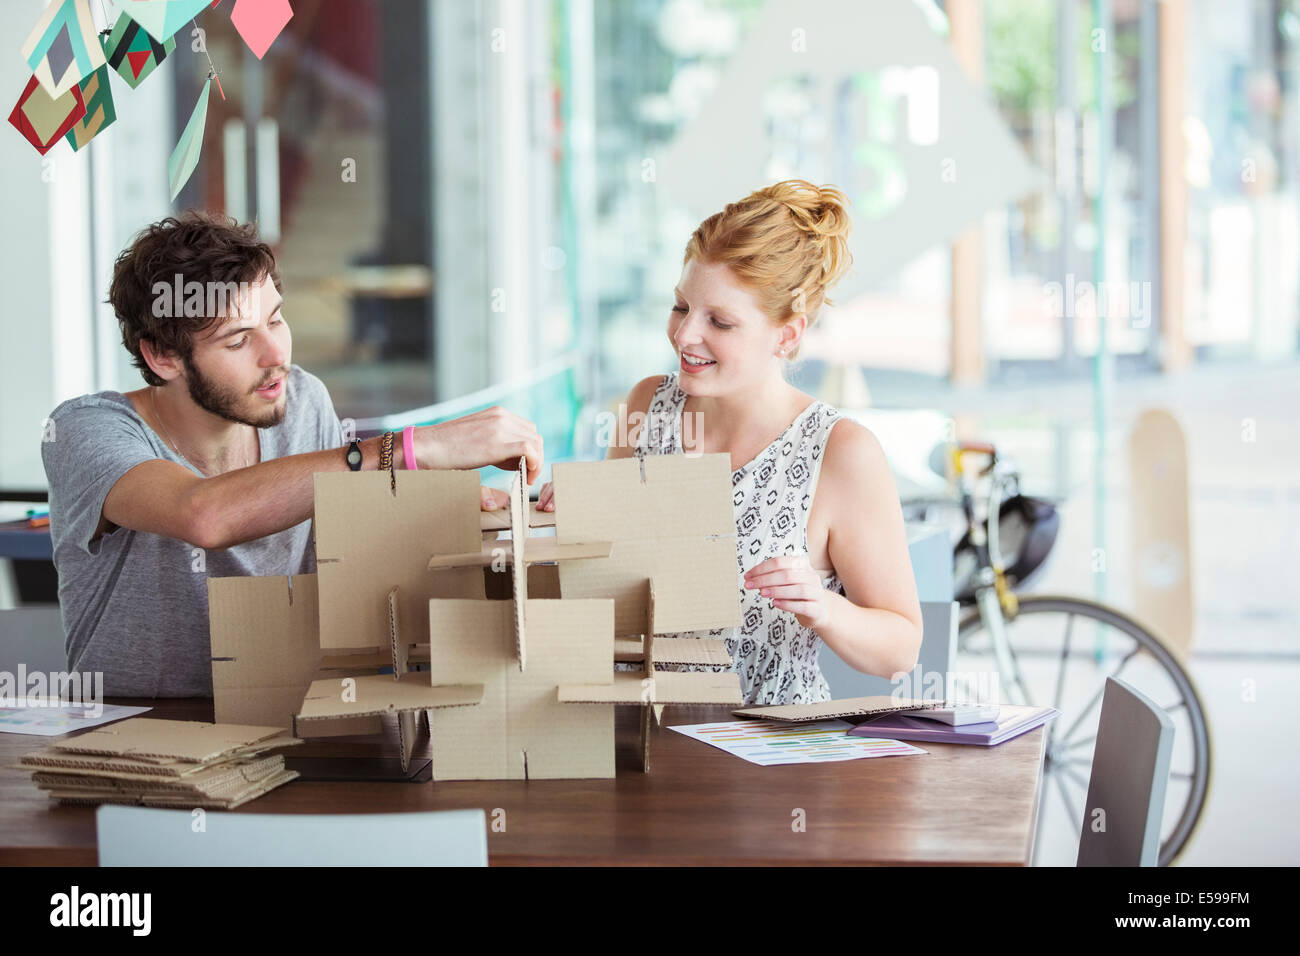 People building model together Stock Photo